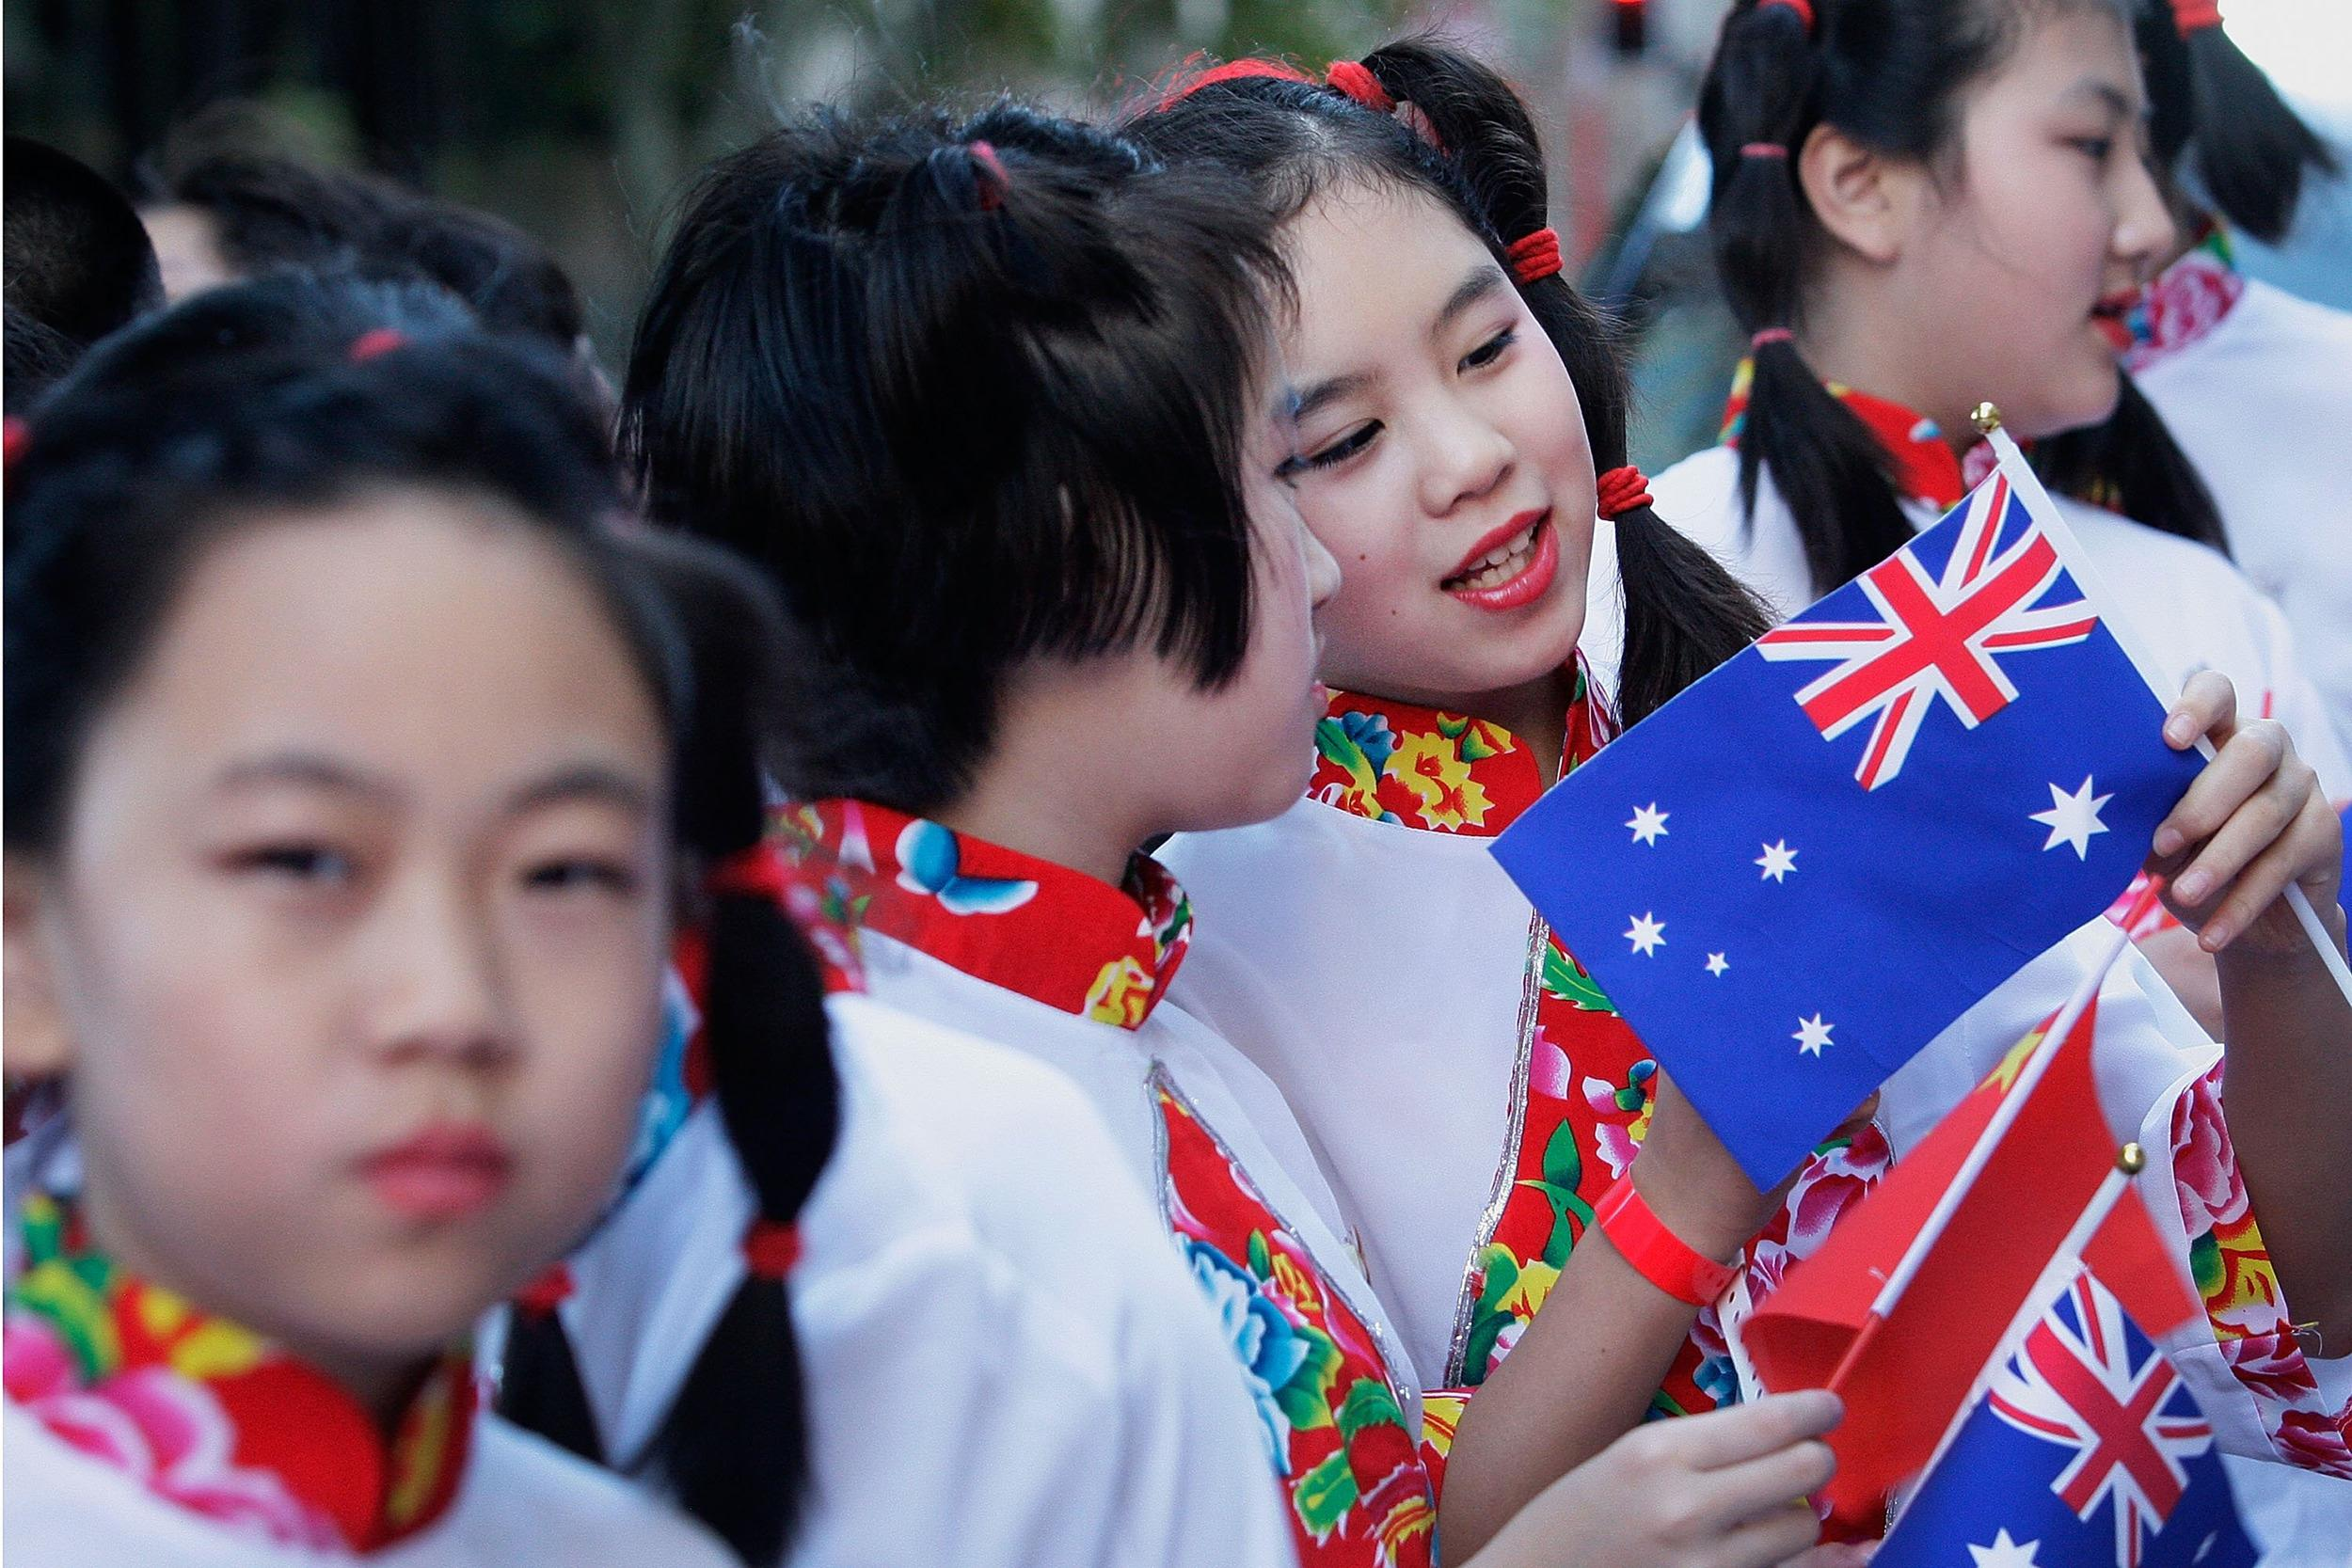 More than half of all Chinese multimillionaires have either left or plan to emigrate, according to surveys. Australia and the U.S. are popular destinations.